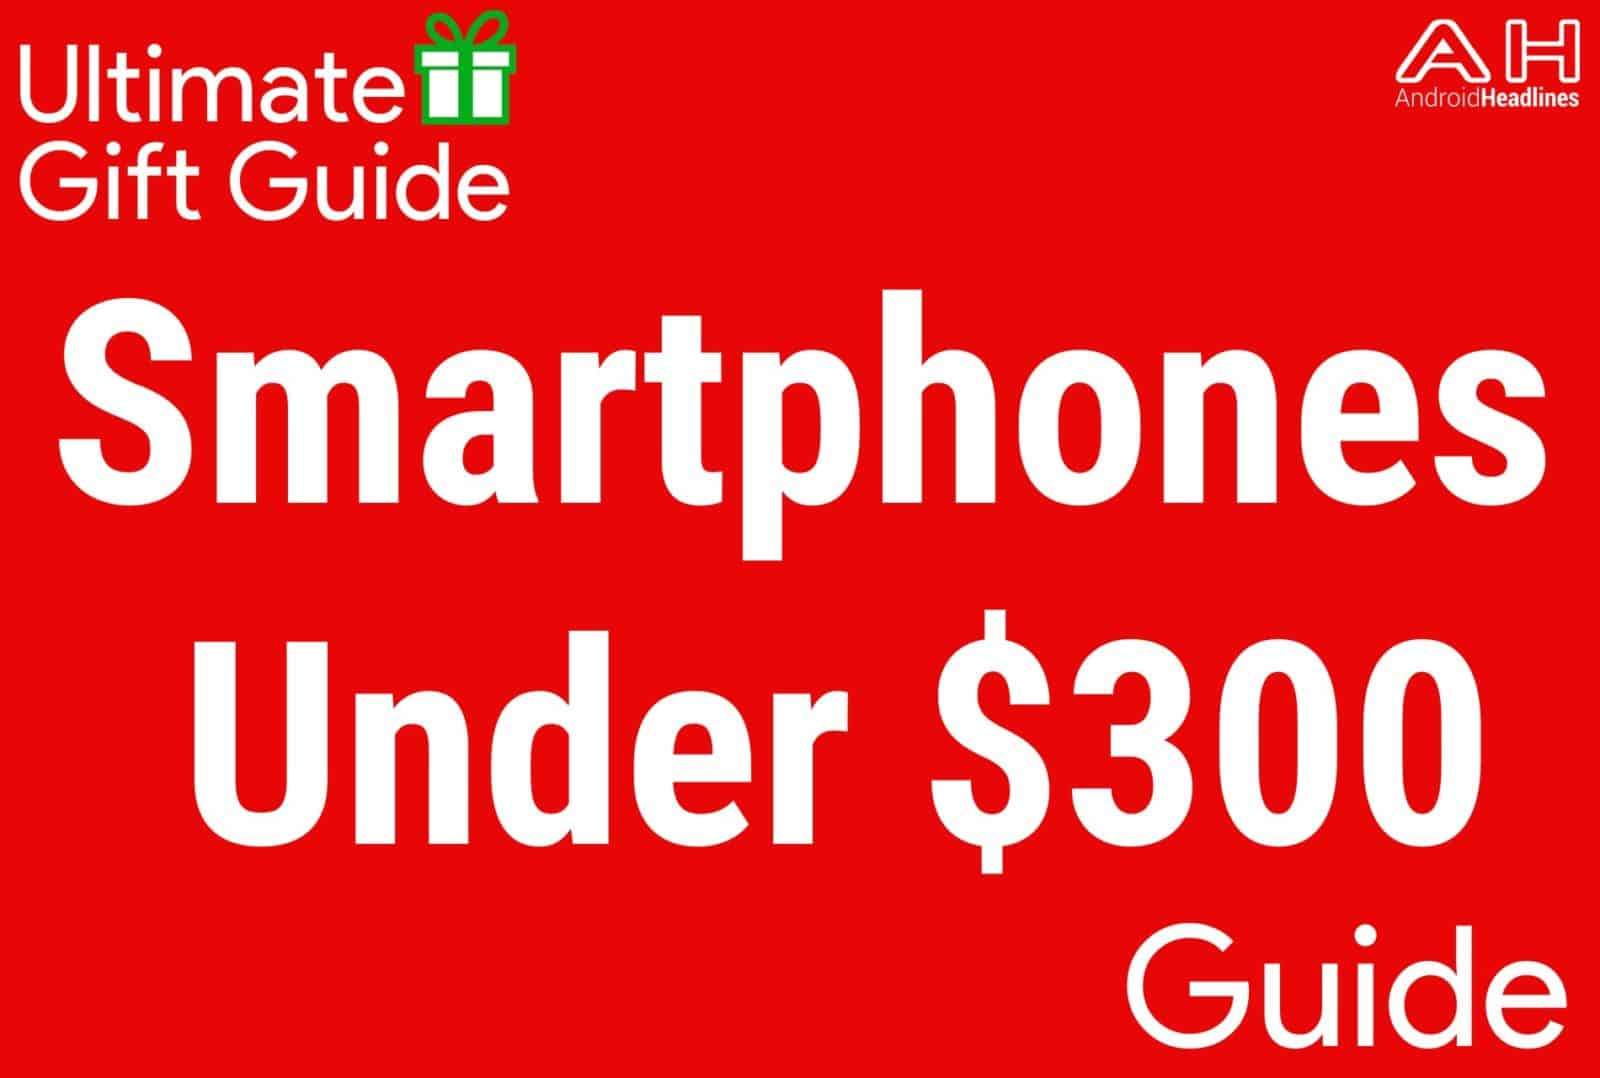 Android Smartphones Under $300 - Holiday Gift Guide 2015-2016